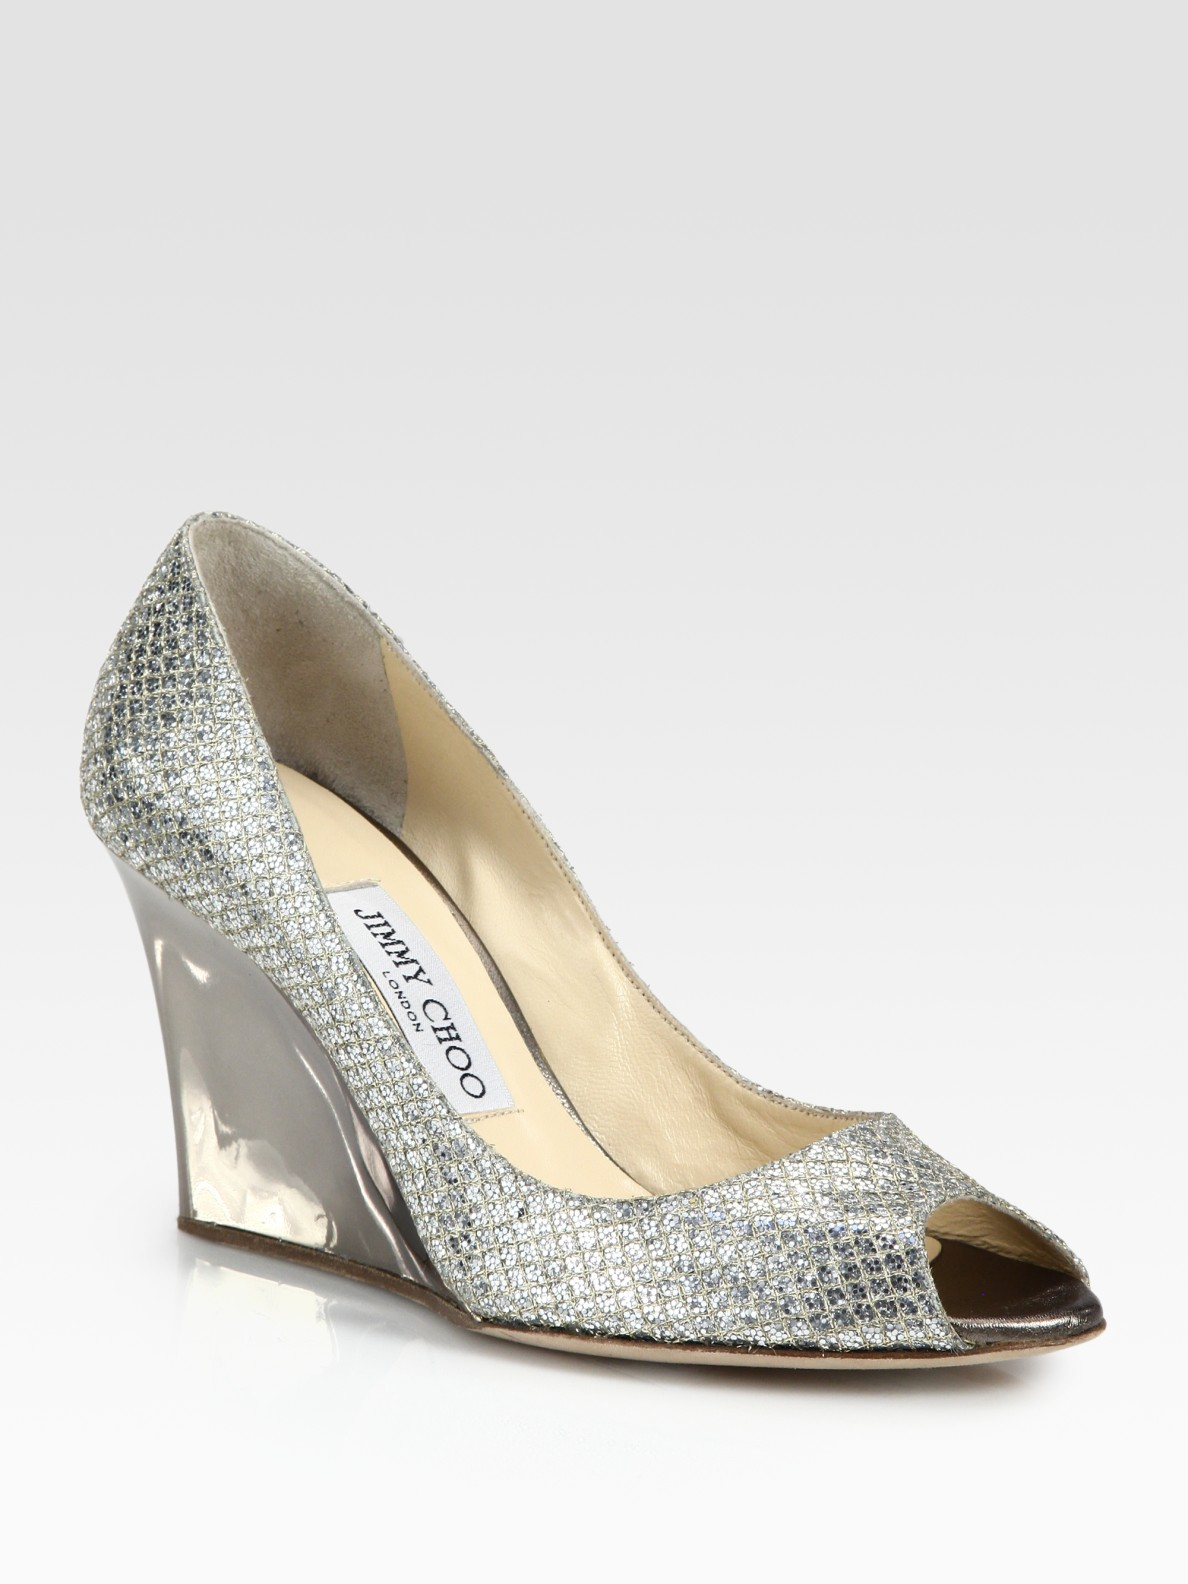 2bbed2aaf2c Lyst - Jimmy Choo Baxen Glitter Wedge Pumps in Metallic